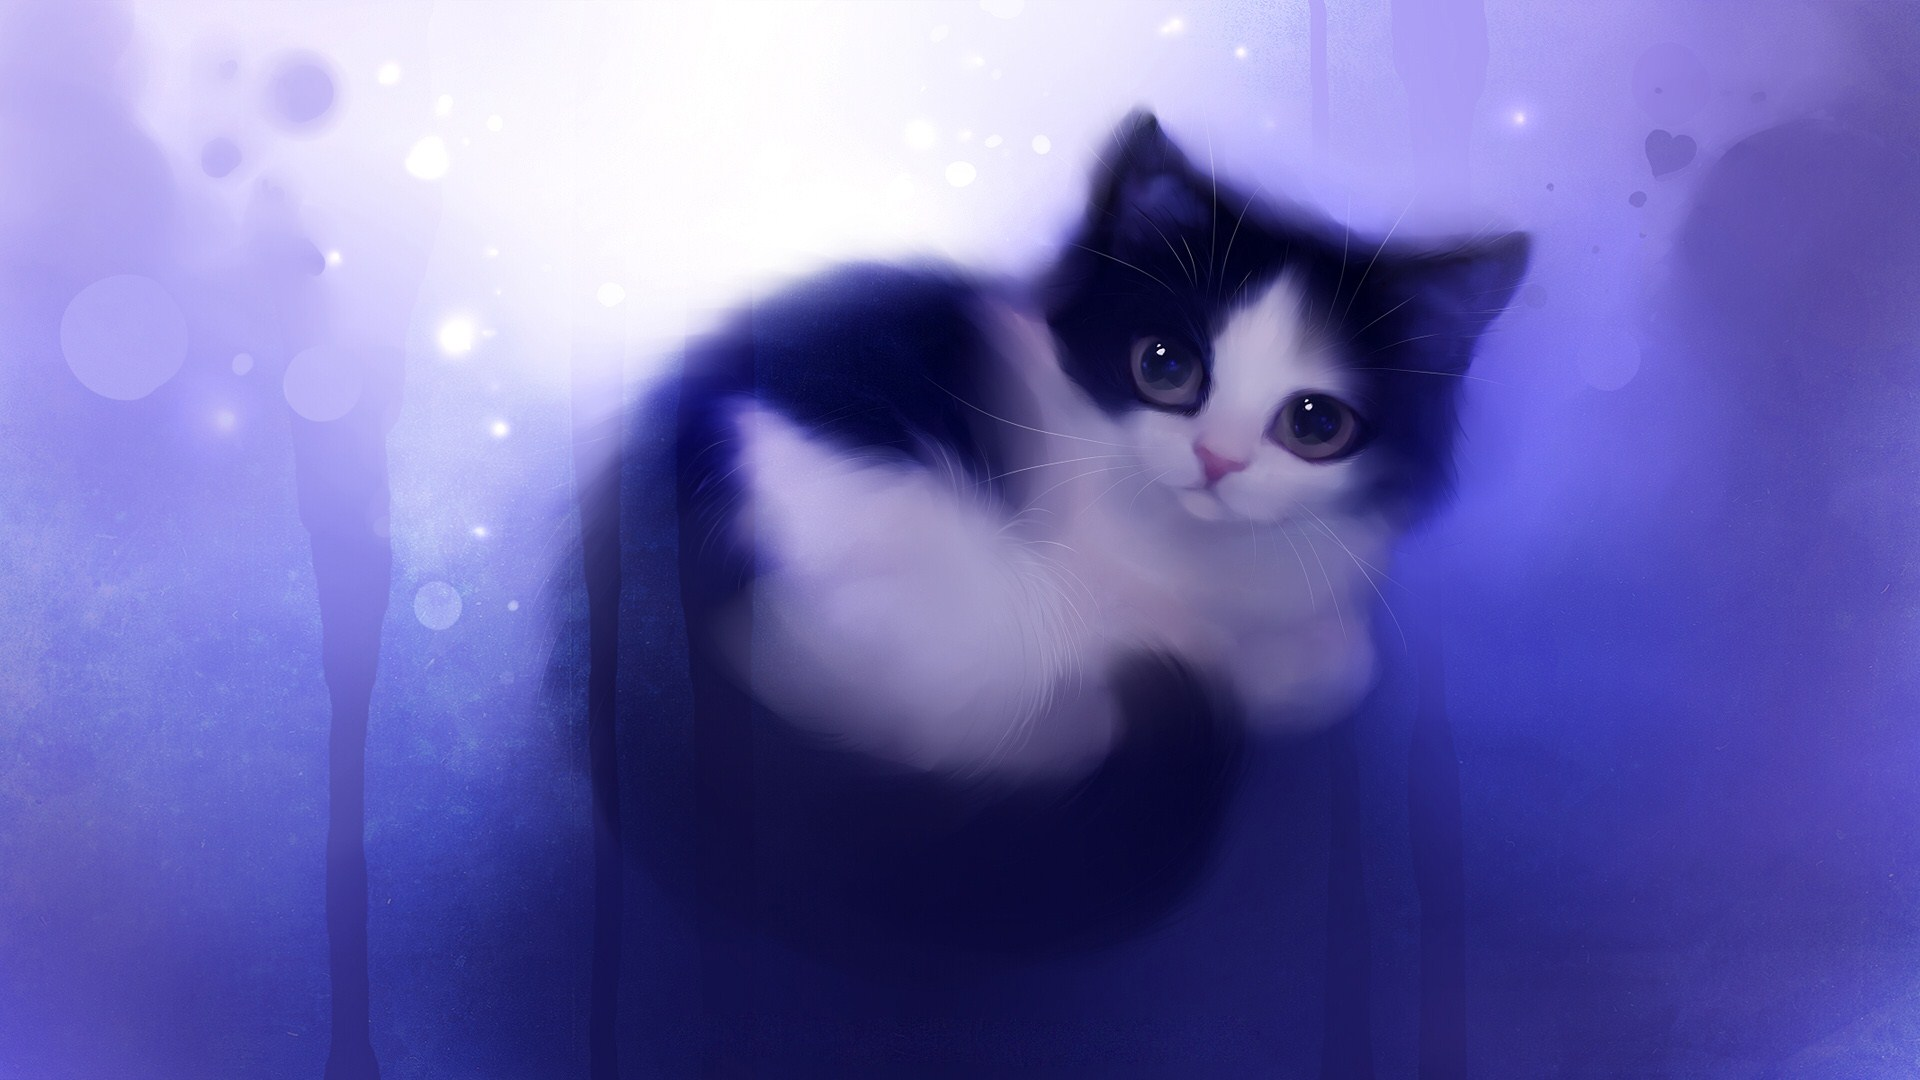 Cute Cat Backgrounds Tumblr